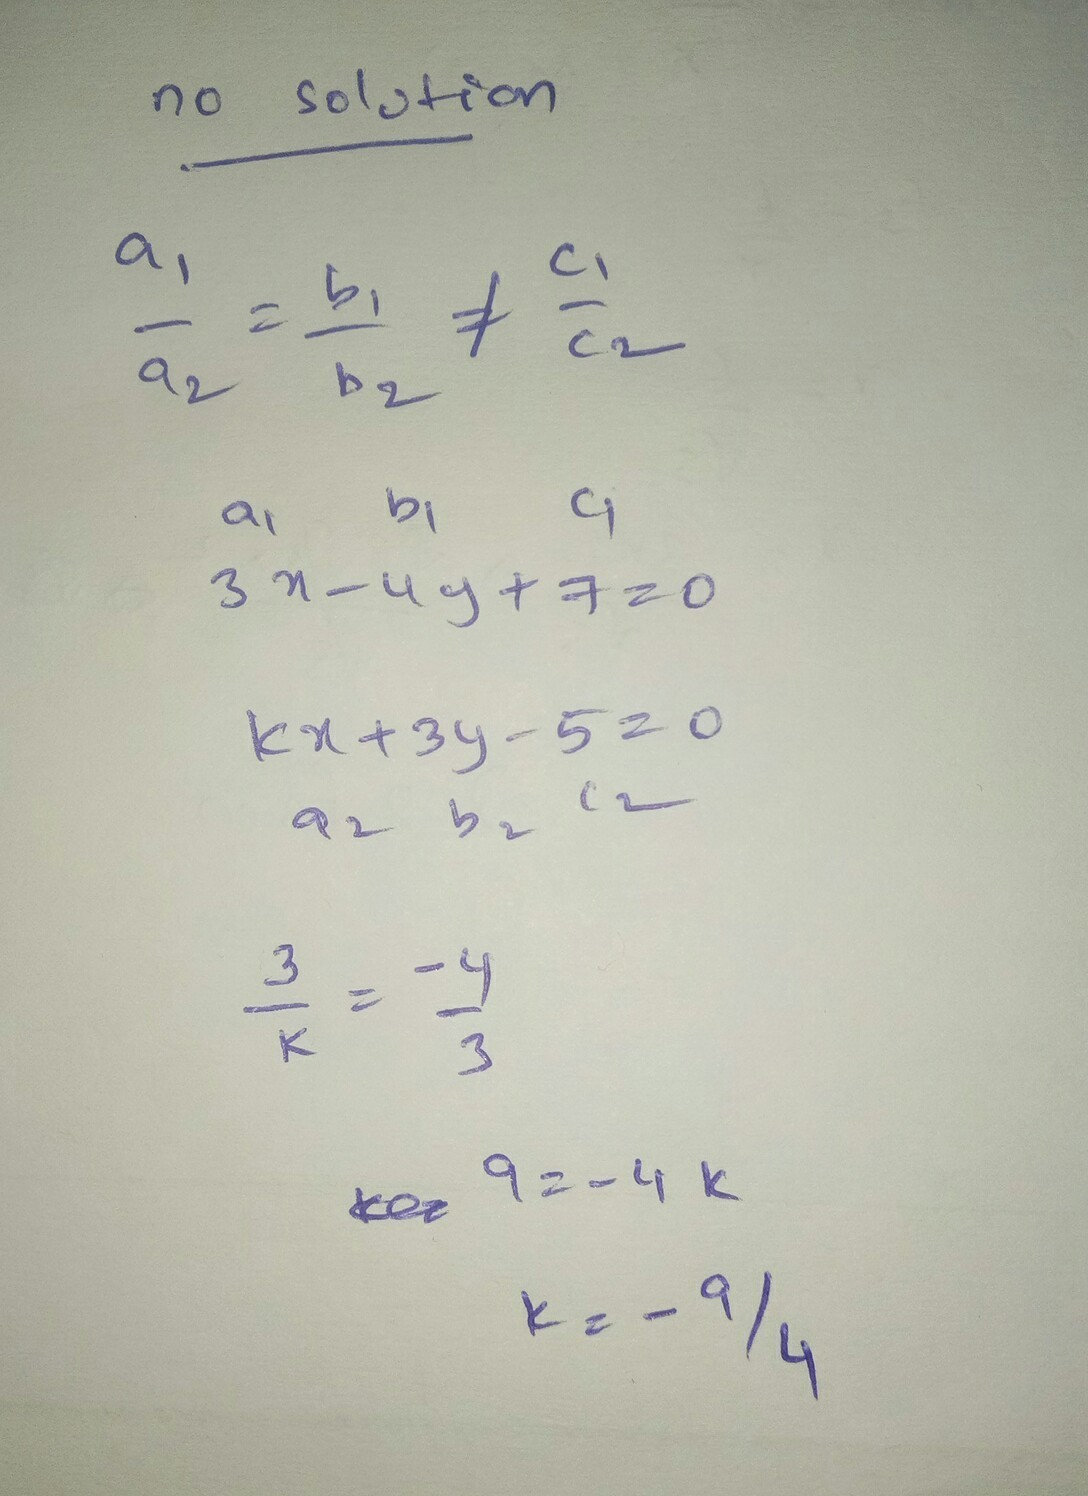 Find The Value Of K For Which The Following System Of